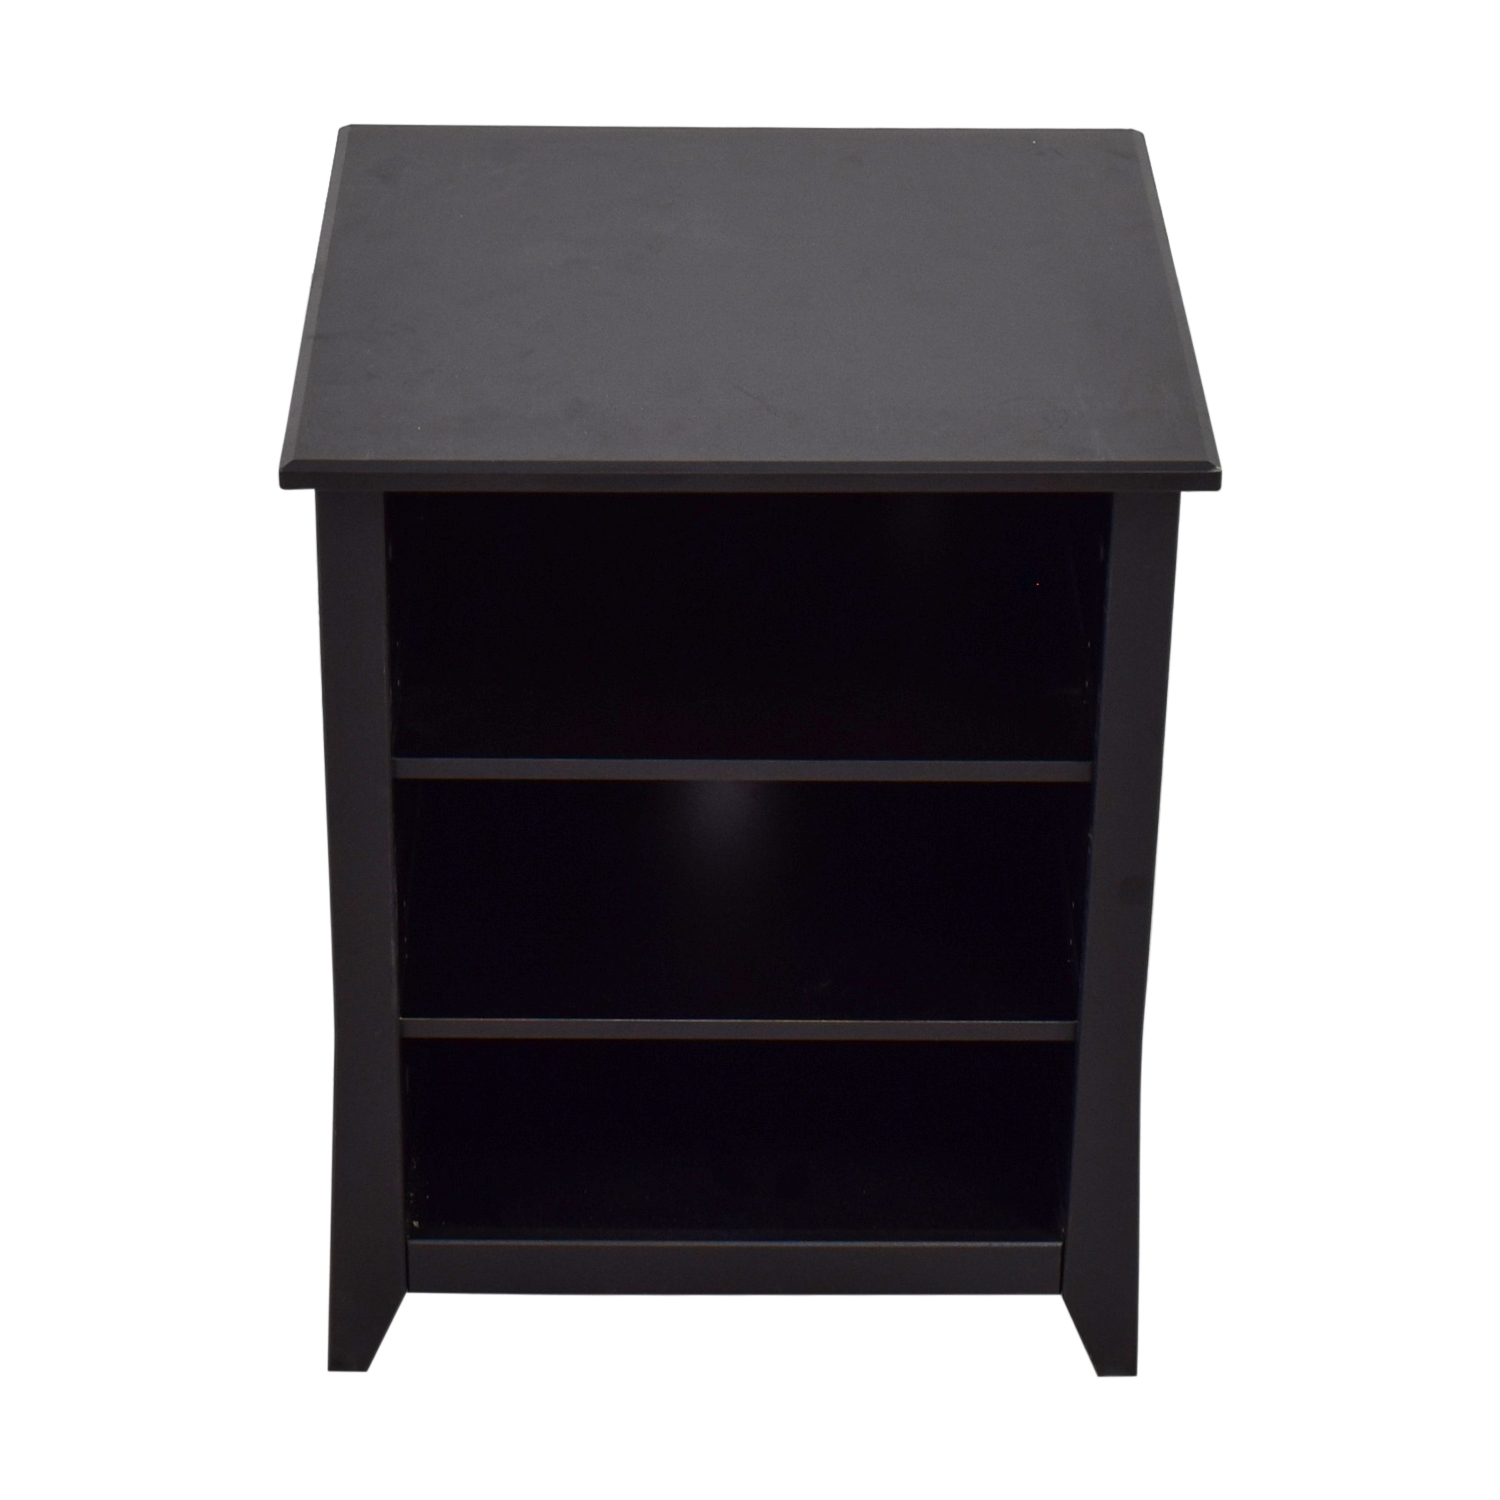 Black Three Shelf Media Unit or Side Table sale